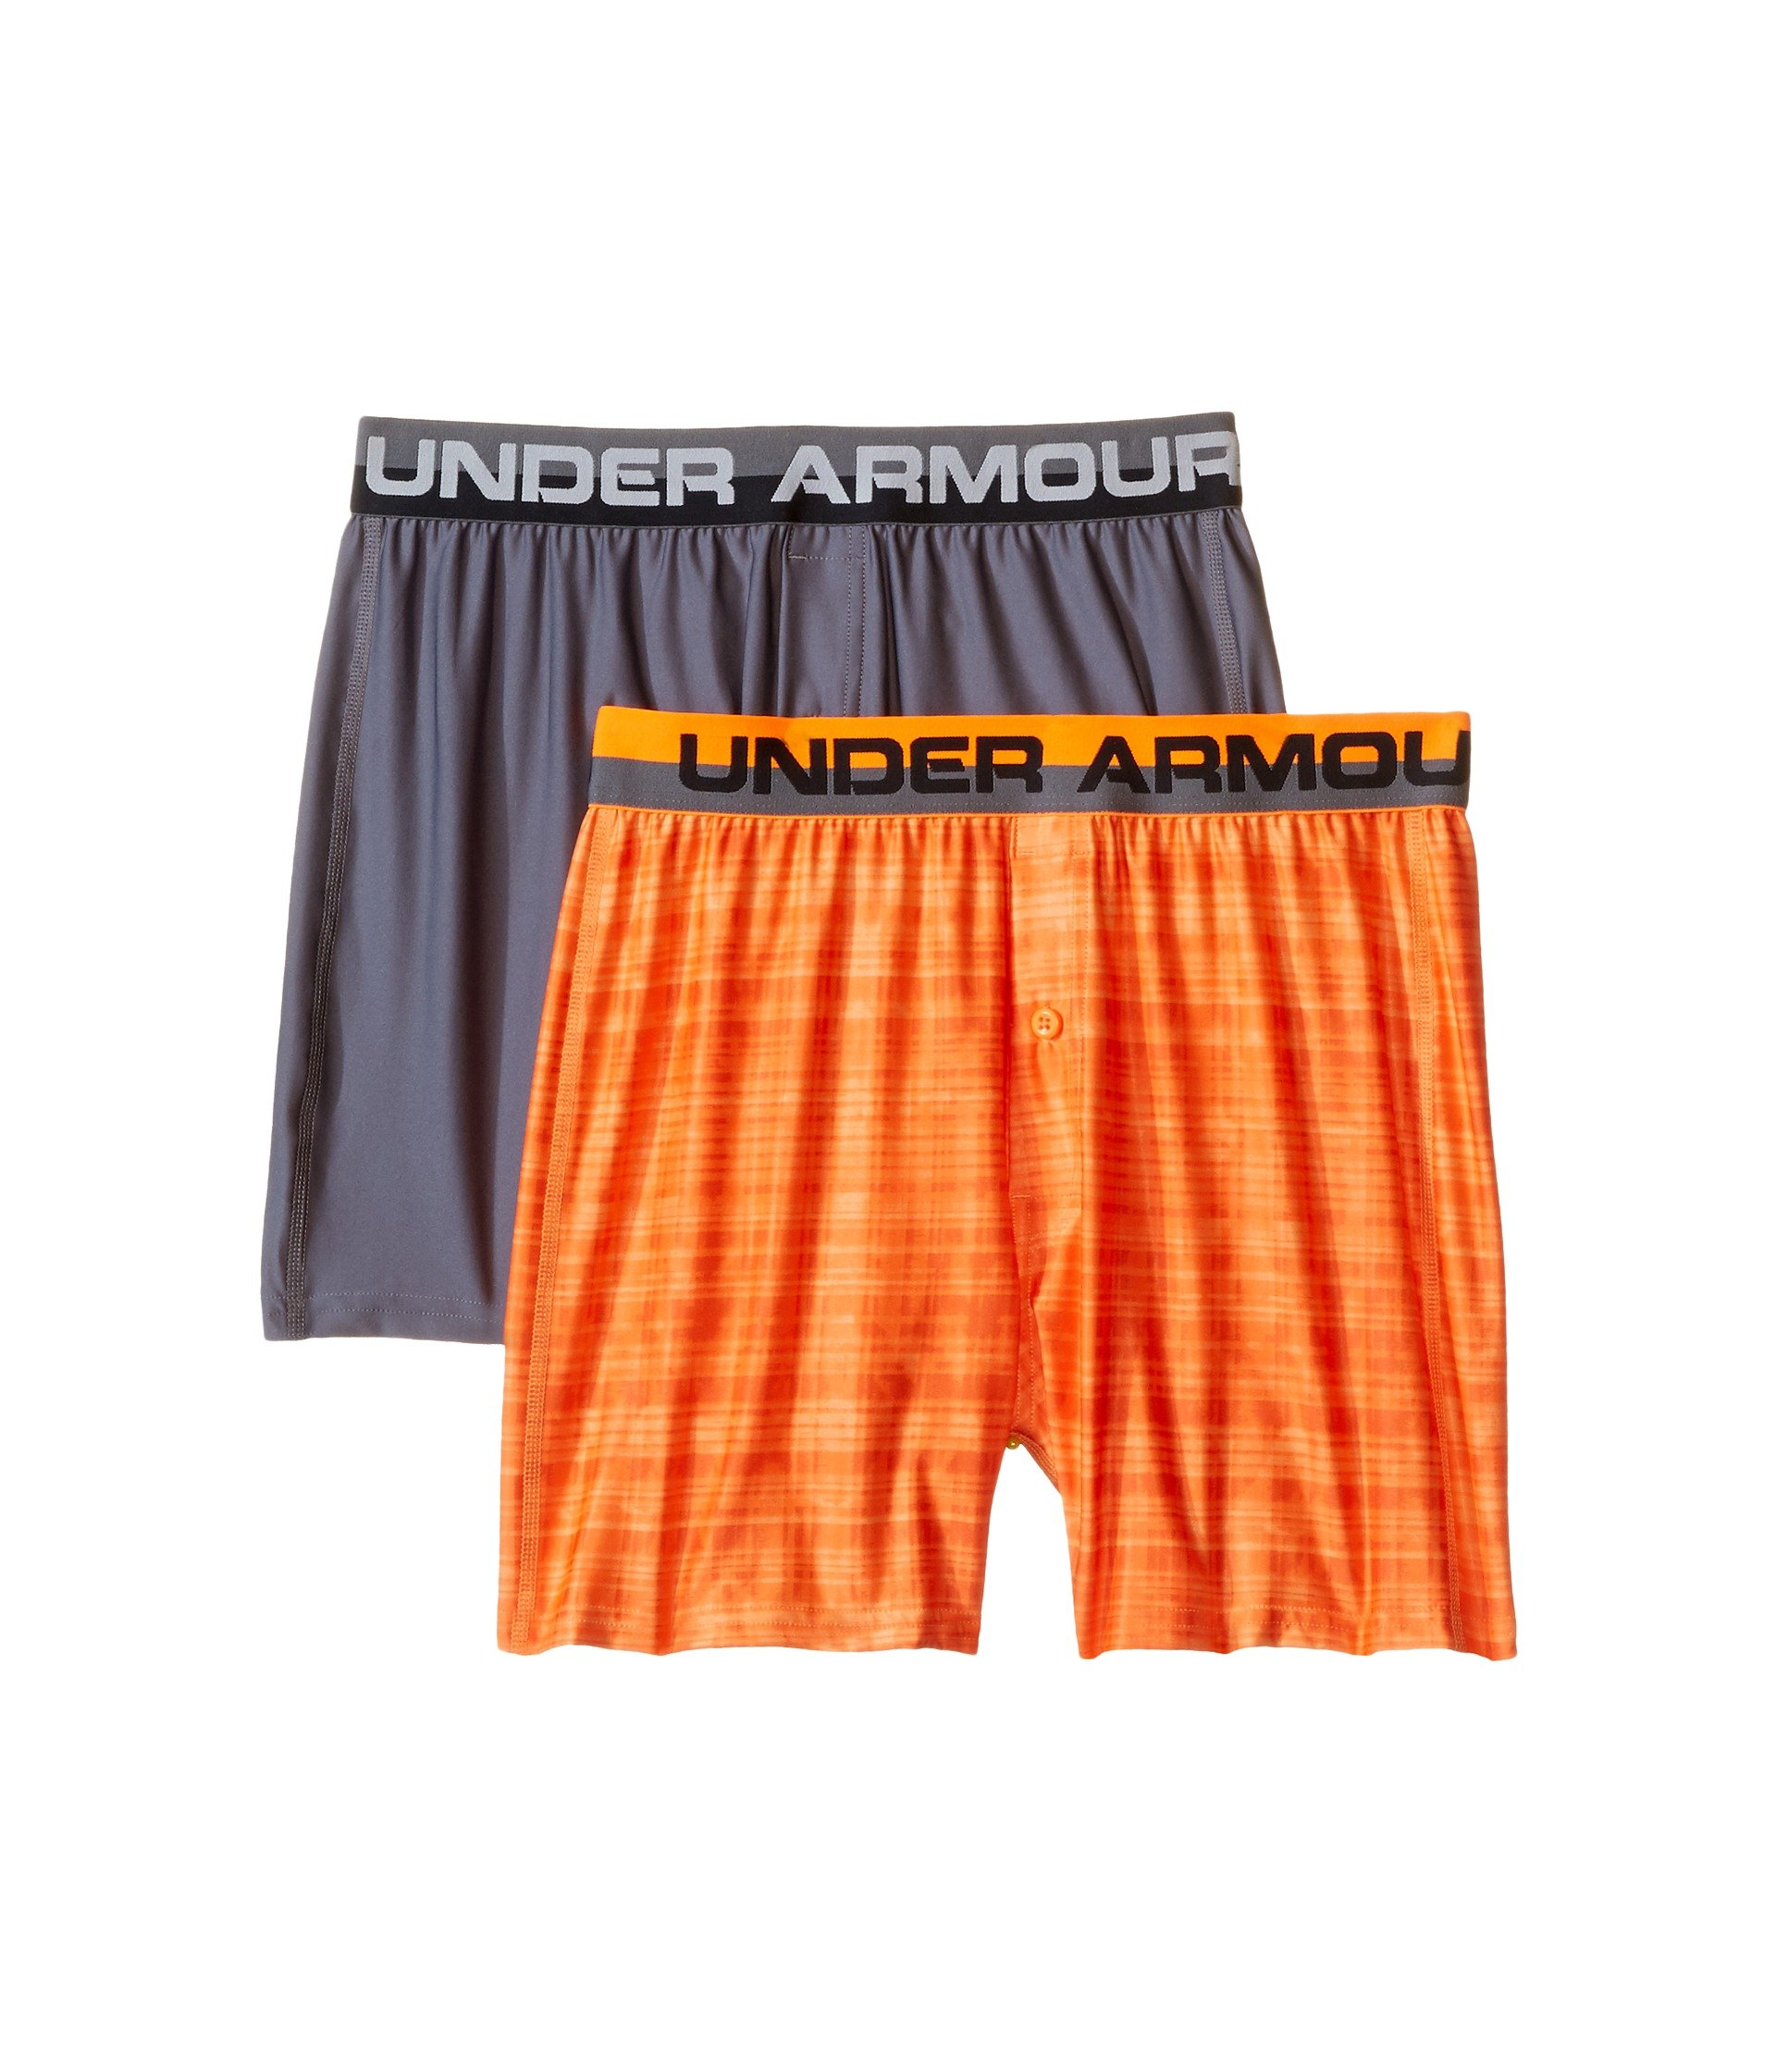 Ropa Interior para Niño Under Armour Kids O-Series Boxer Shorts (Big Kids)  + Under Armour en VeoyCompro.net